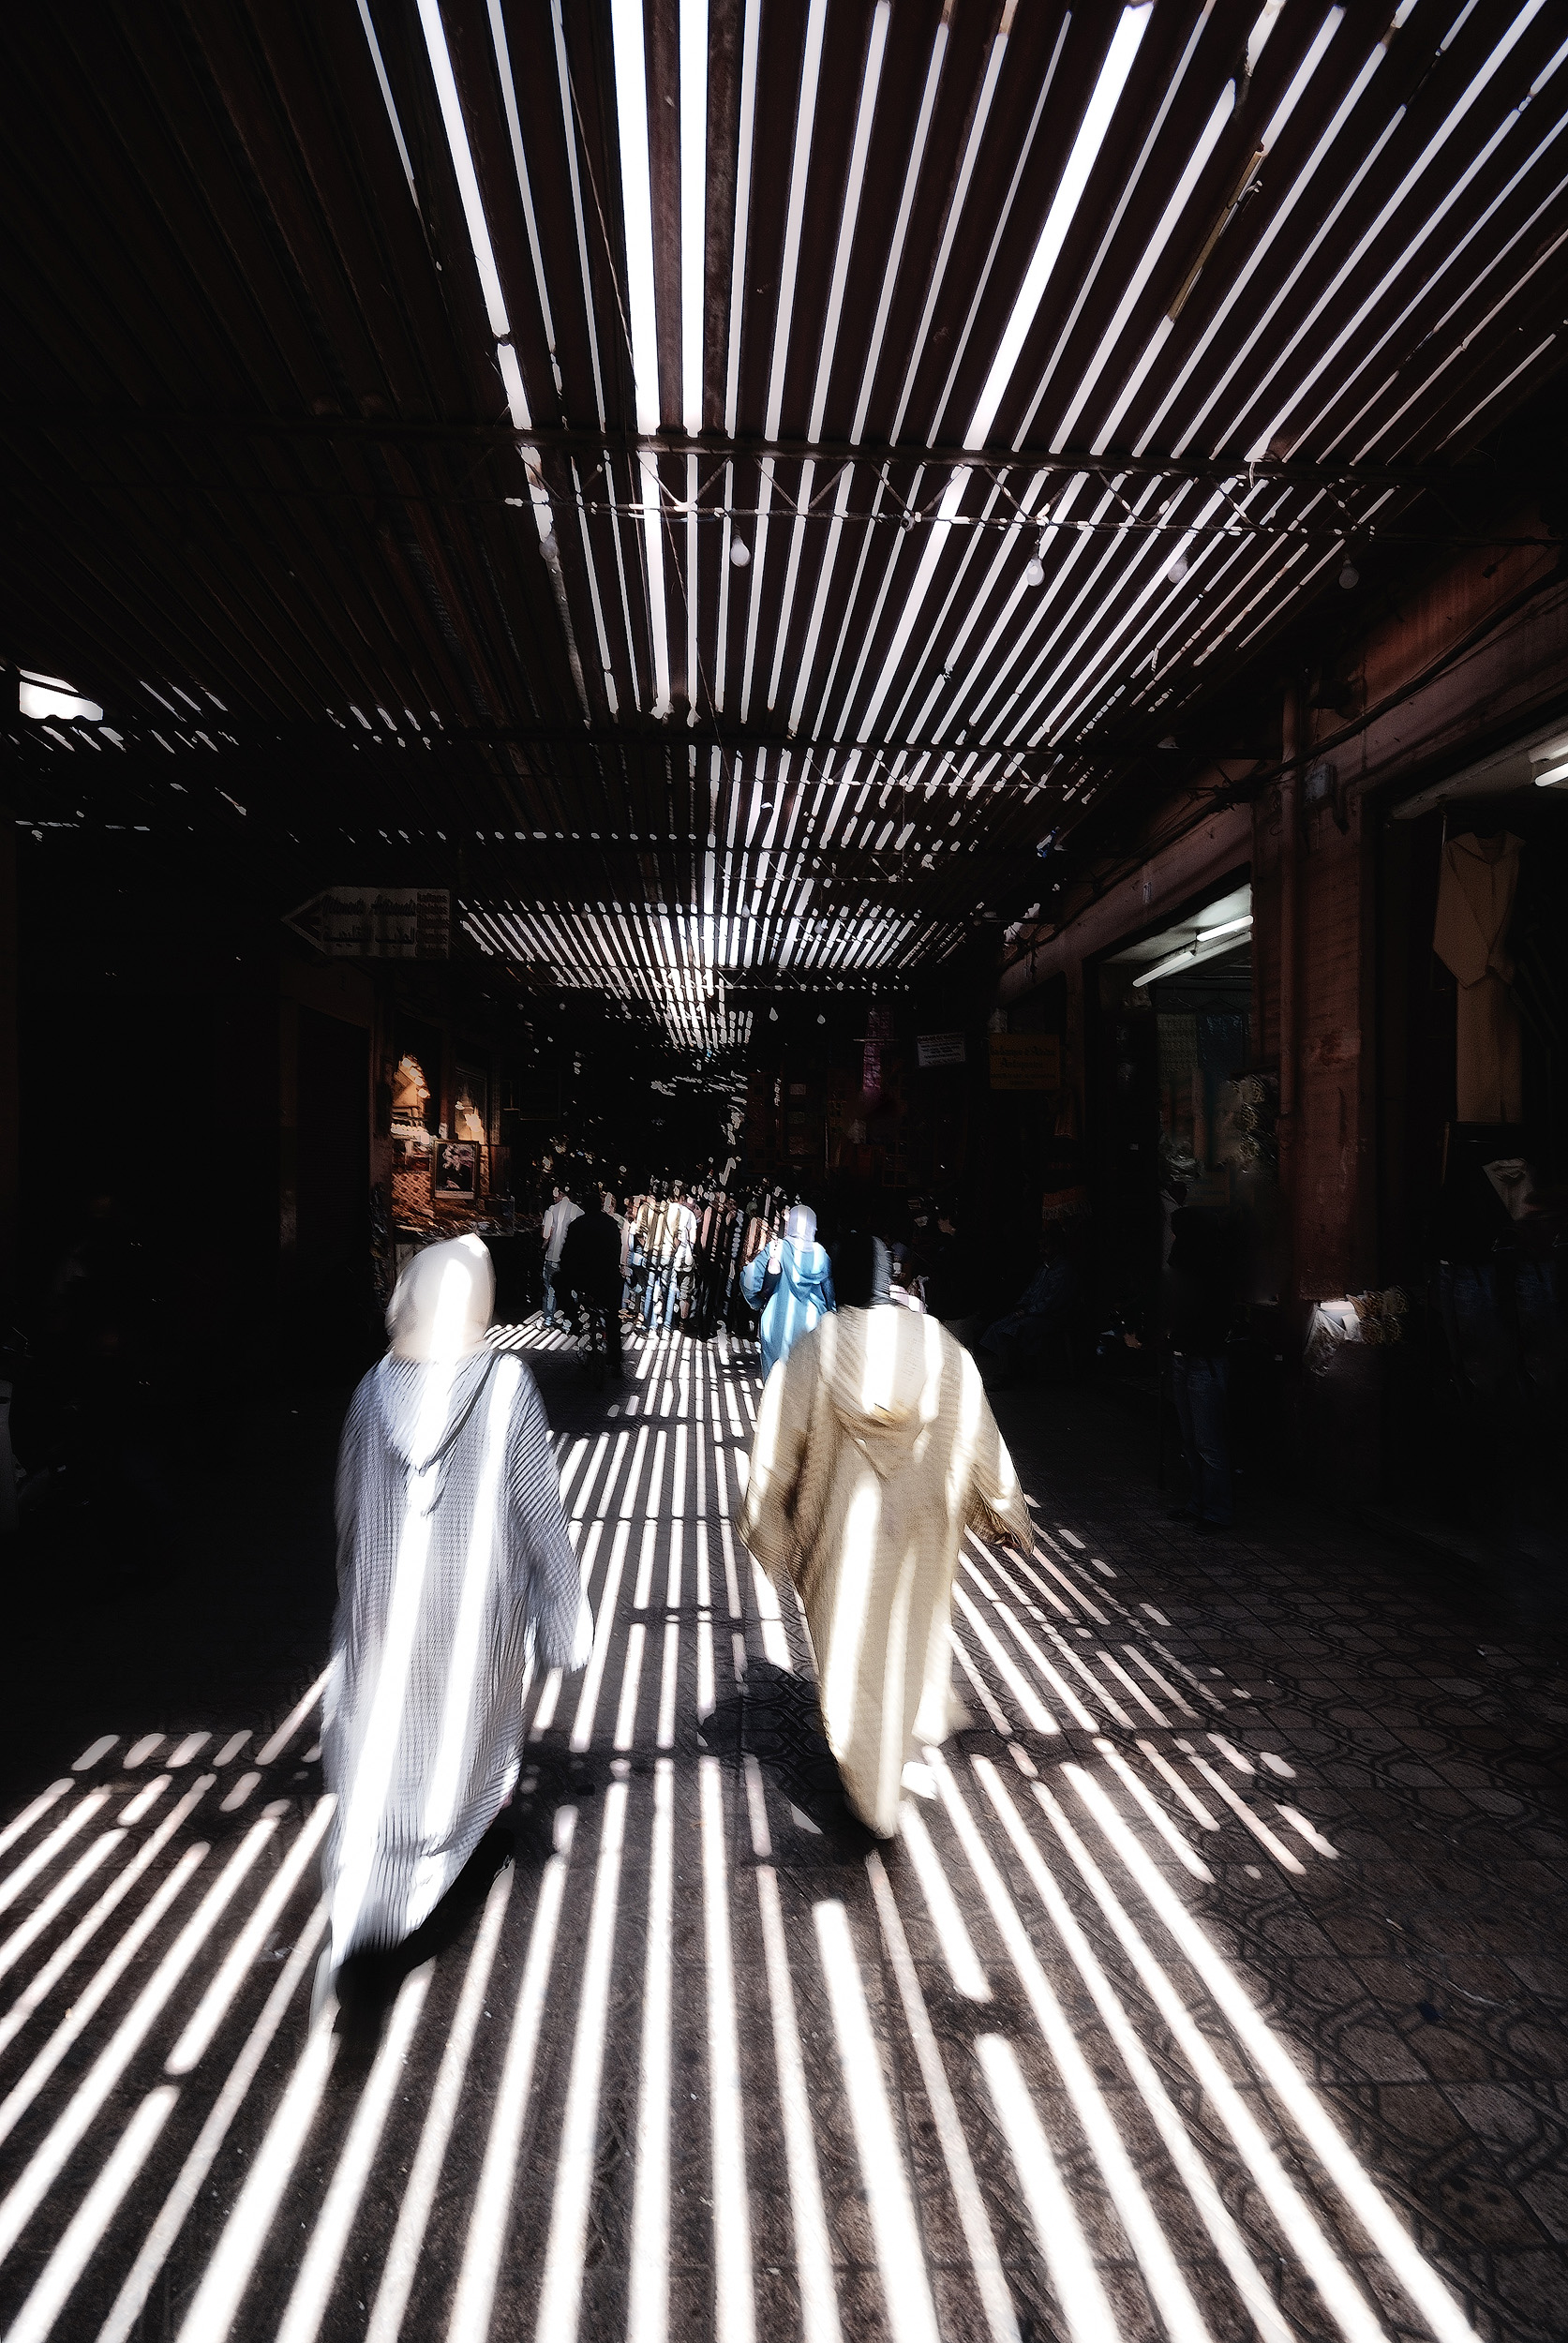 The Souk   Light streams through the roof of the souk in Marrakech